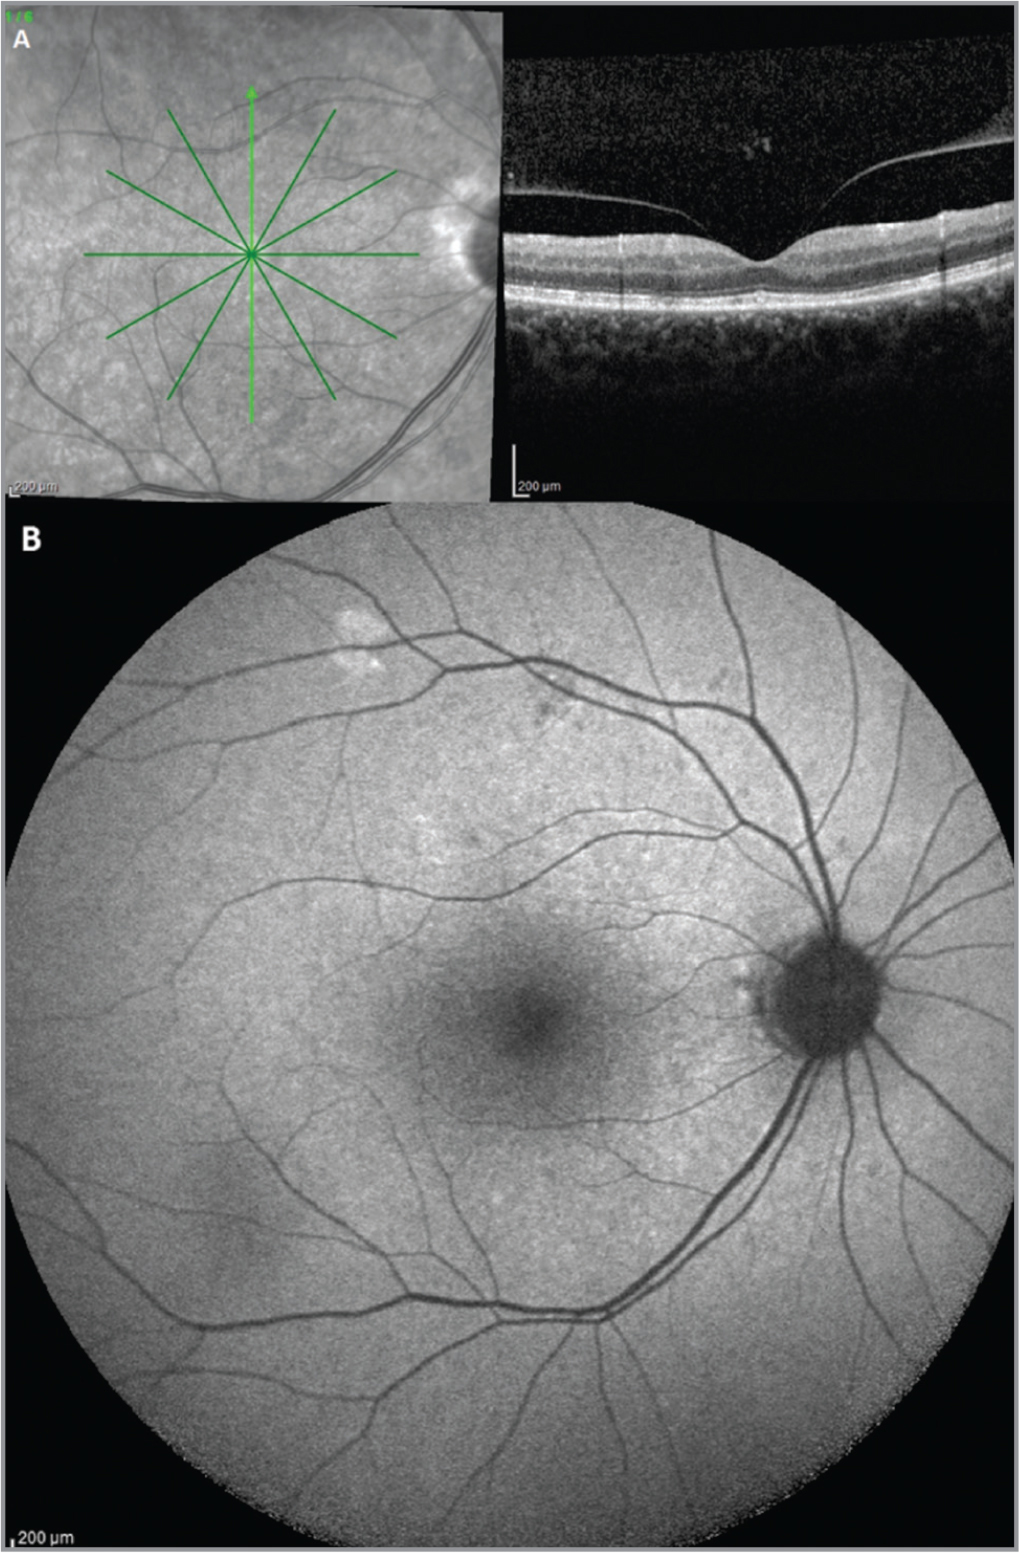 (A, B) At 3 months from presentation, spectral-domain optical coherence tomography images confirmed the complete morphologic restoration of the outer retinal layers (A); moreover, fundus autofluorescence returned to normal appearance (B).